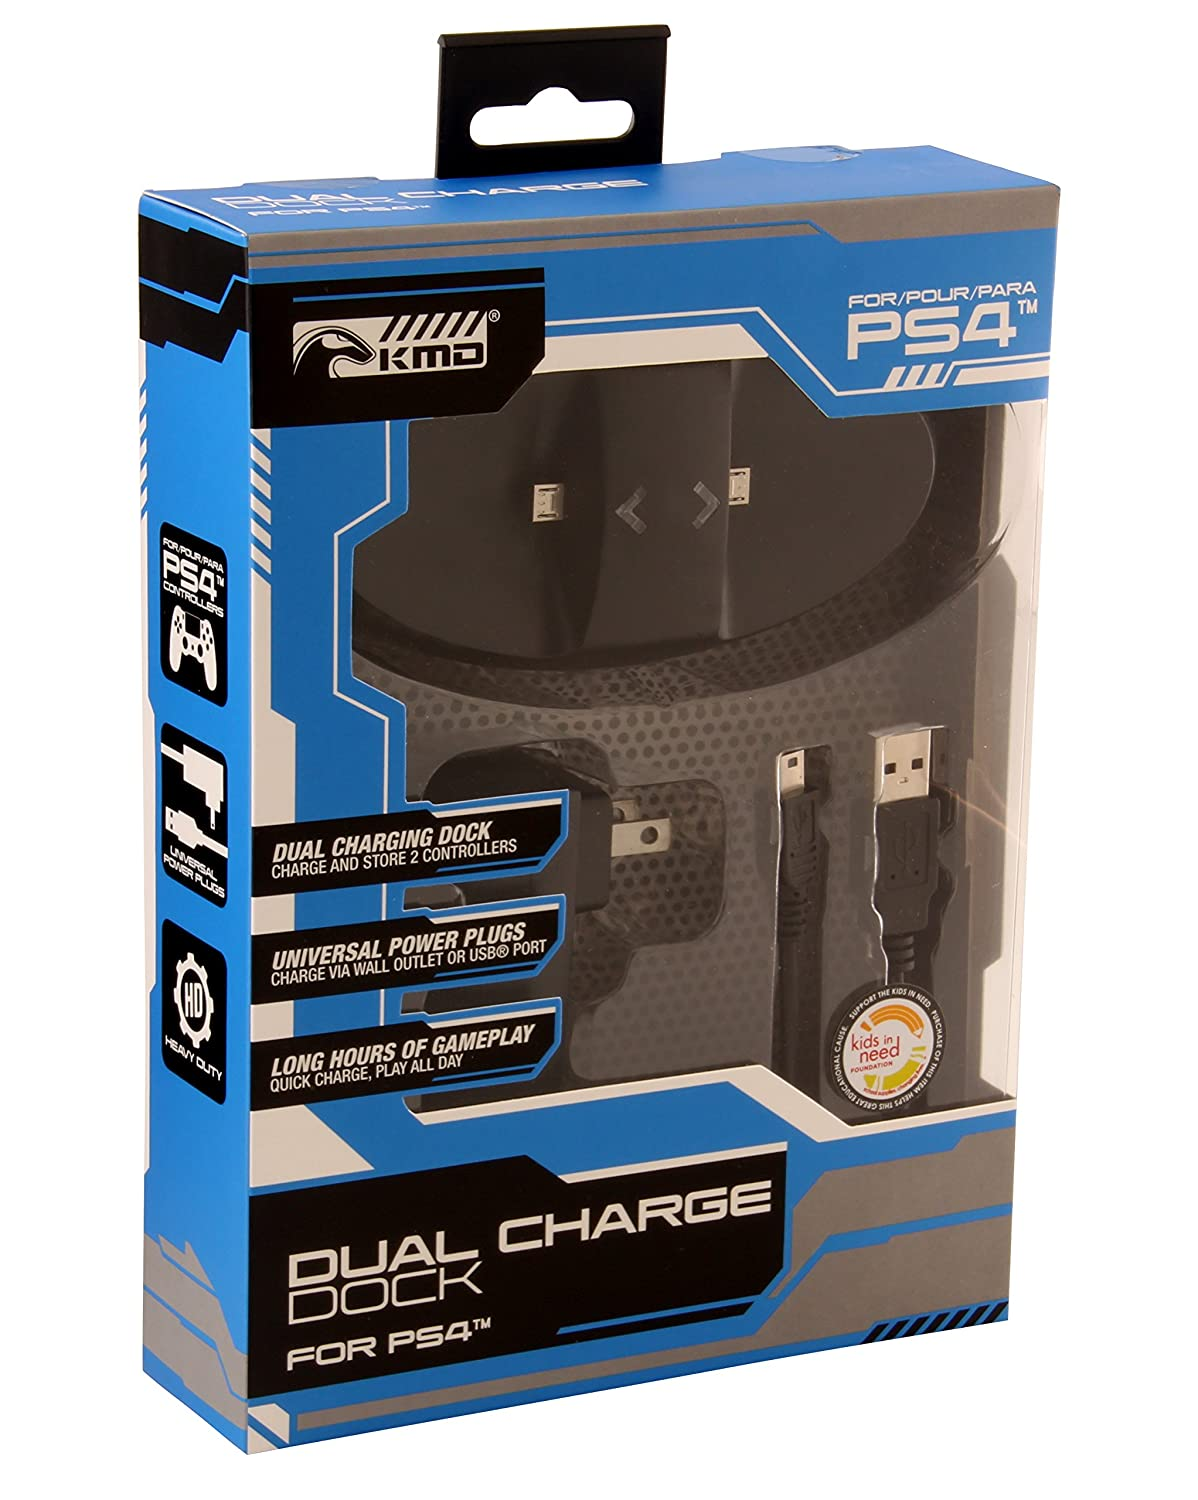 KMD Dual Charge Dock - Black